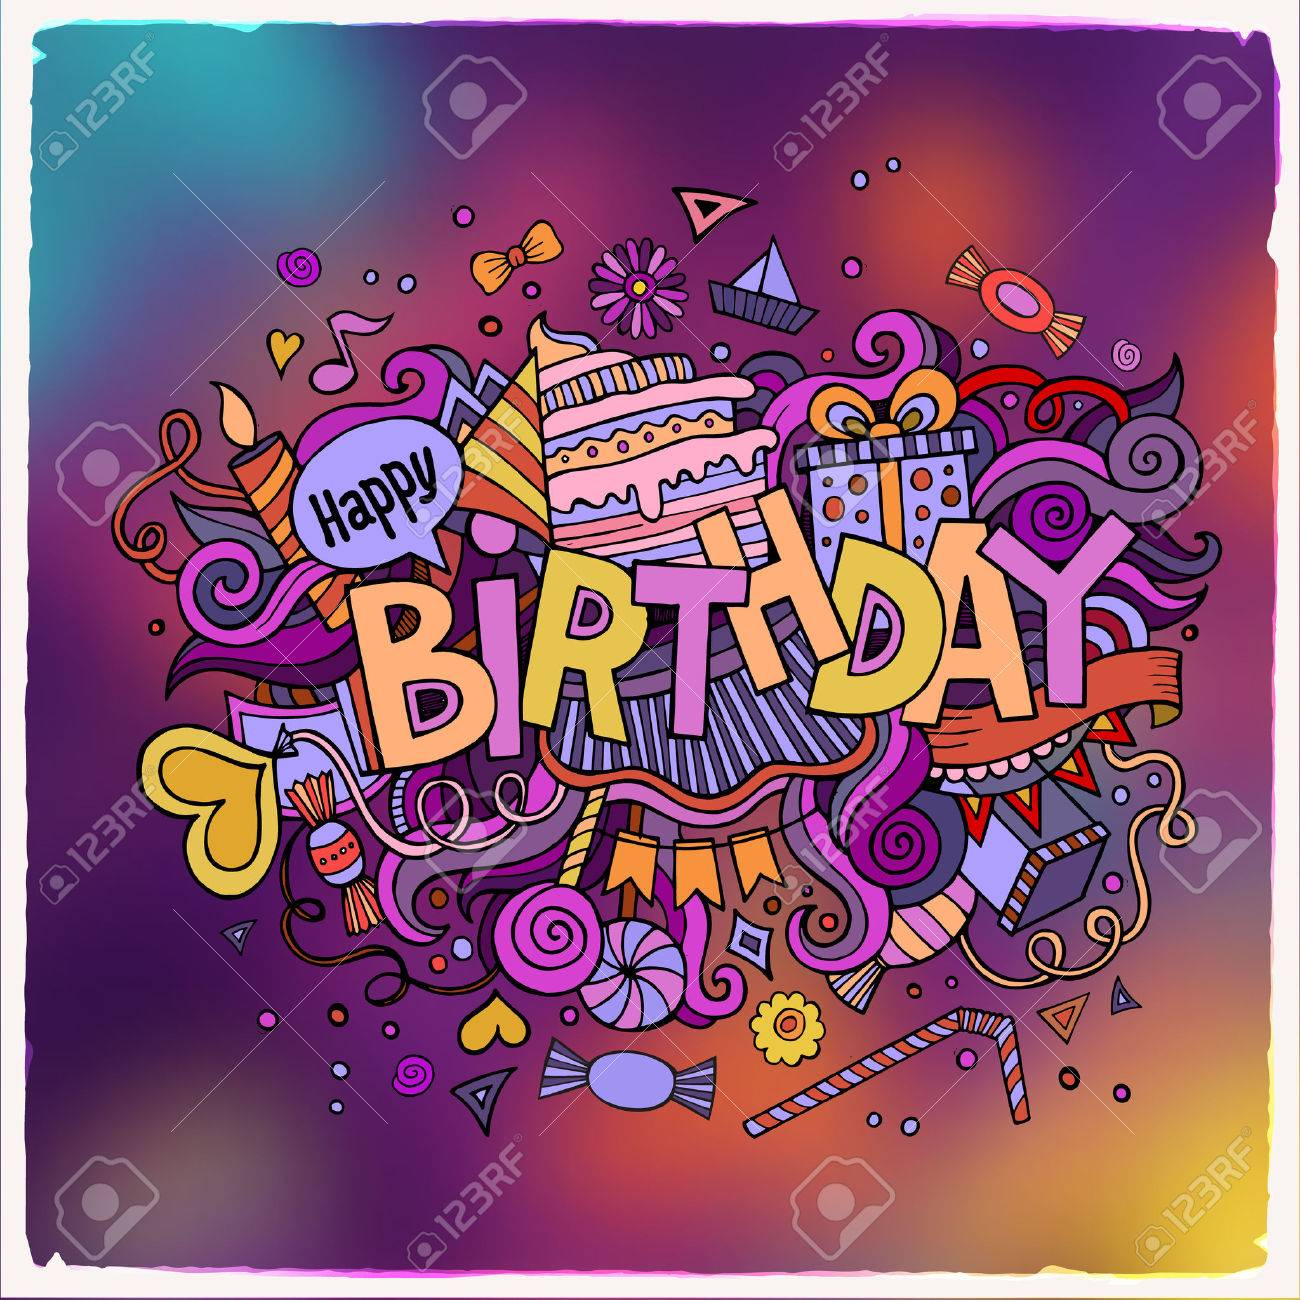 Birthday hand lettering and doodles elements background. Vector illustration - 42531034